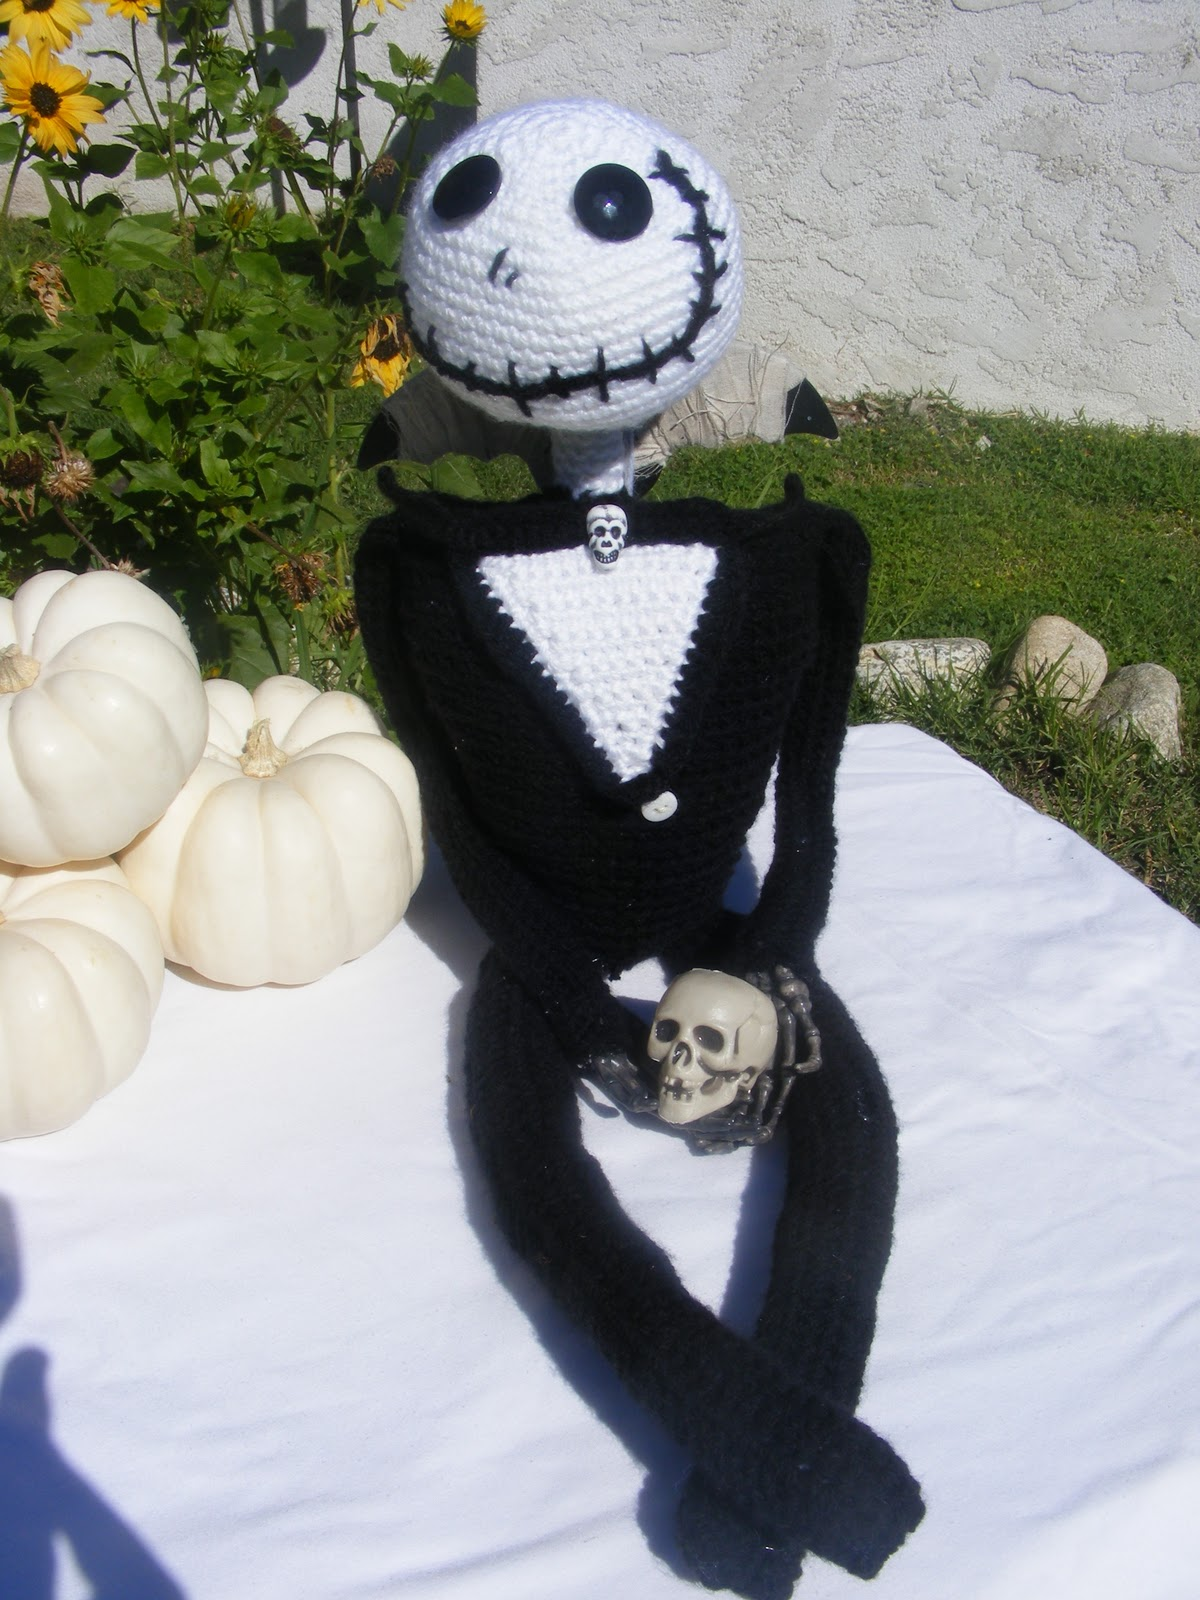 Crochet Jack Skellington : lauries crazy4crochet: Jack Skellington Crochet Pattern